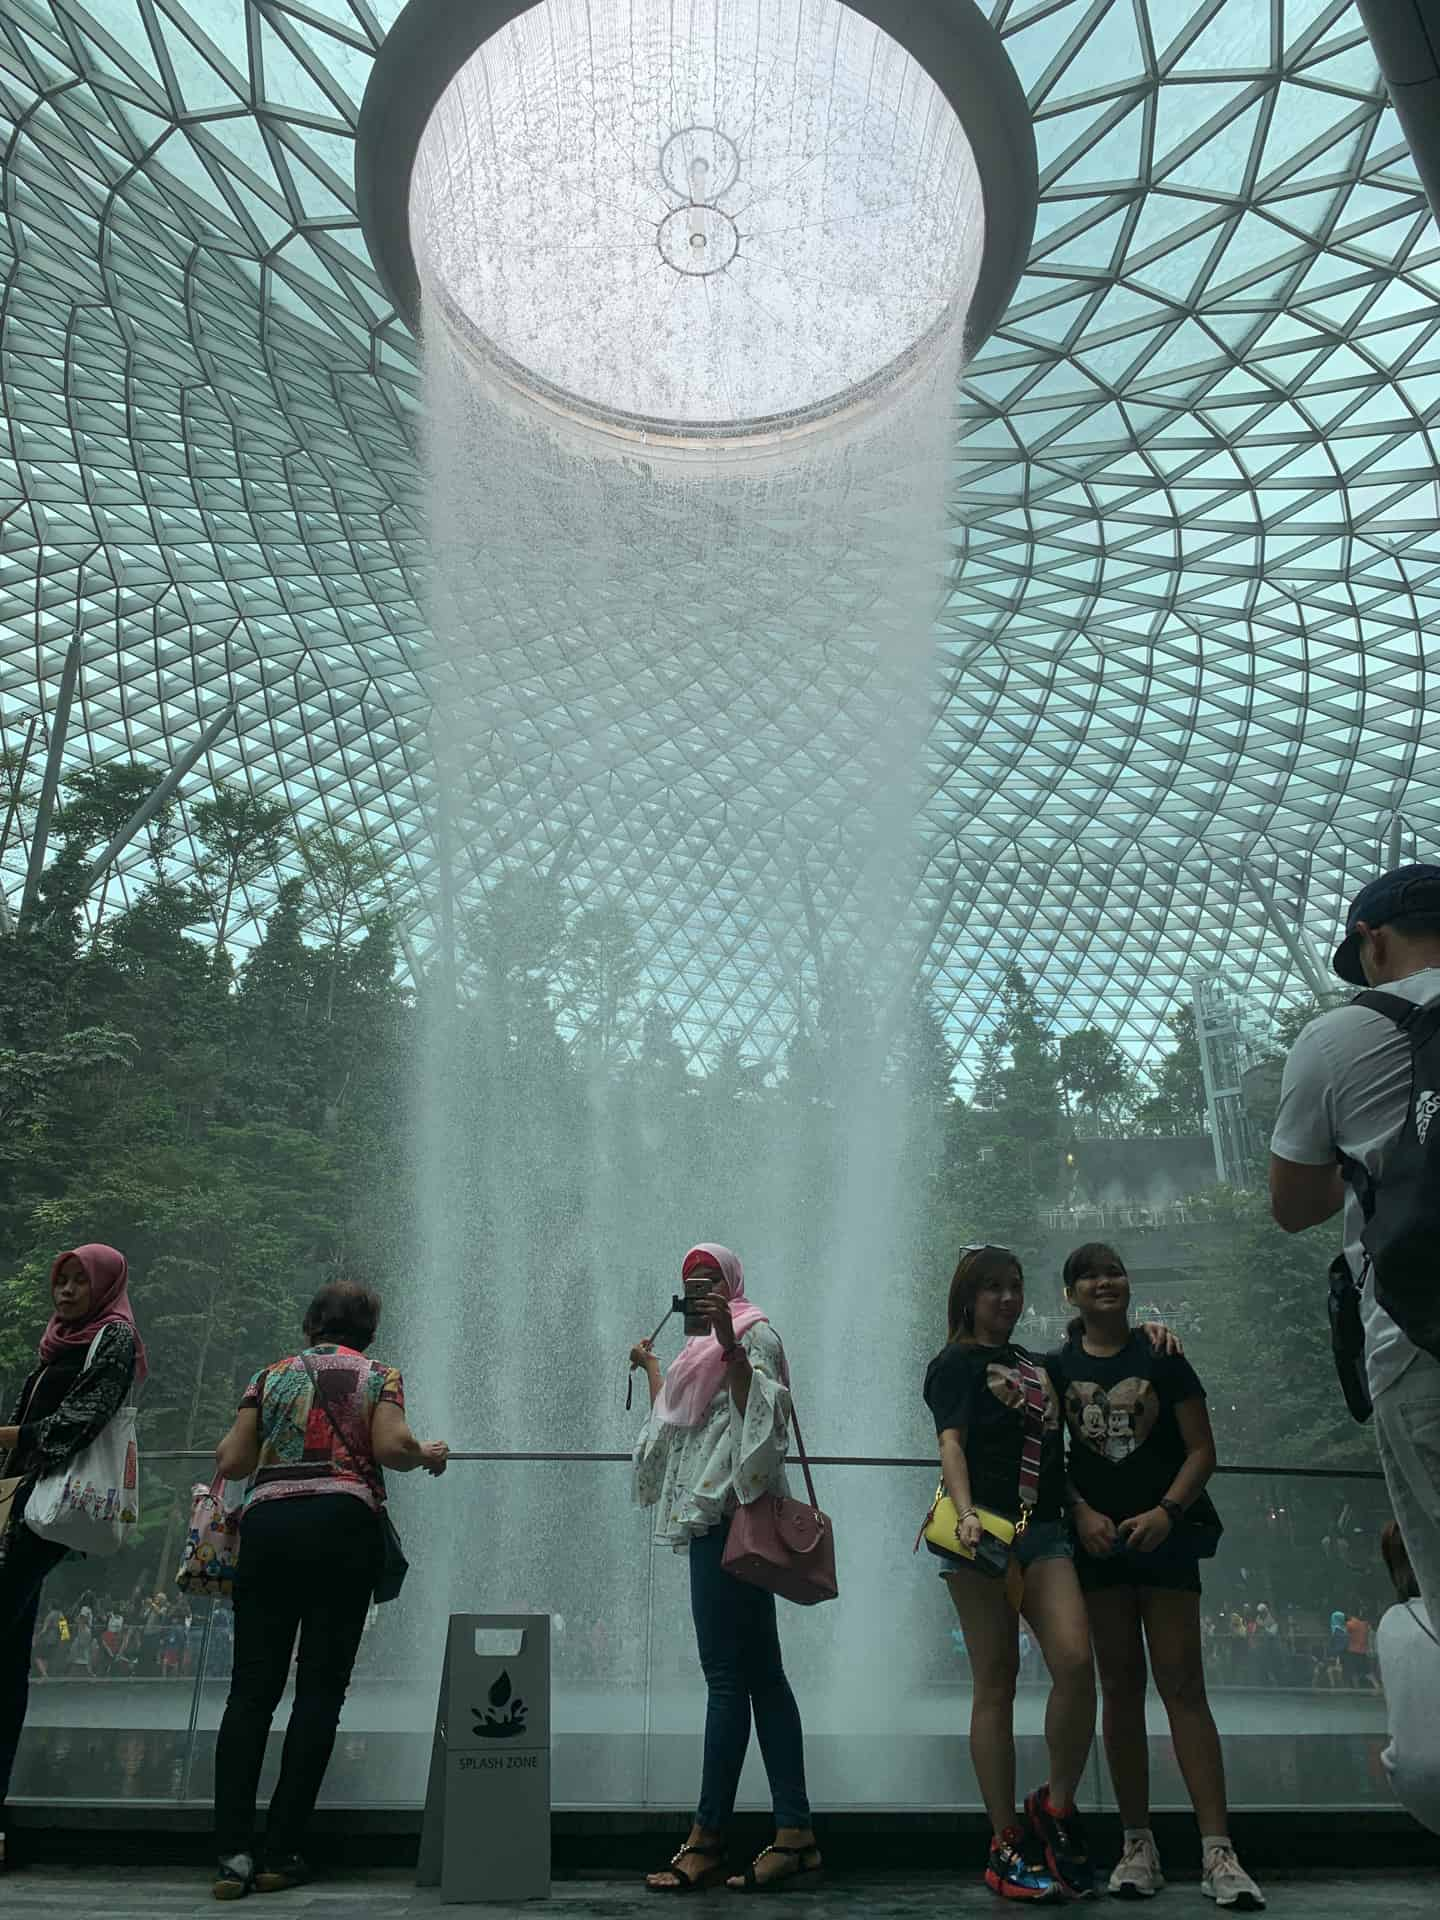 Woman takes selfie at the Jewel in Changi Airport Singapore